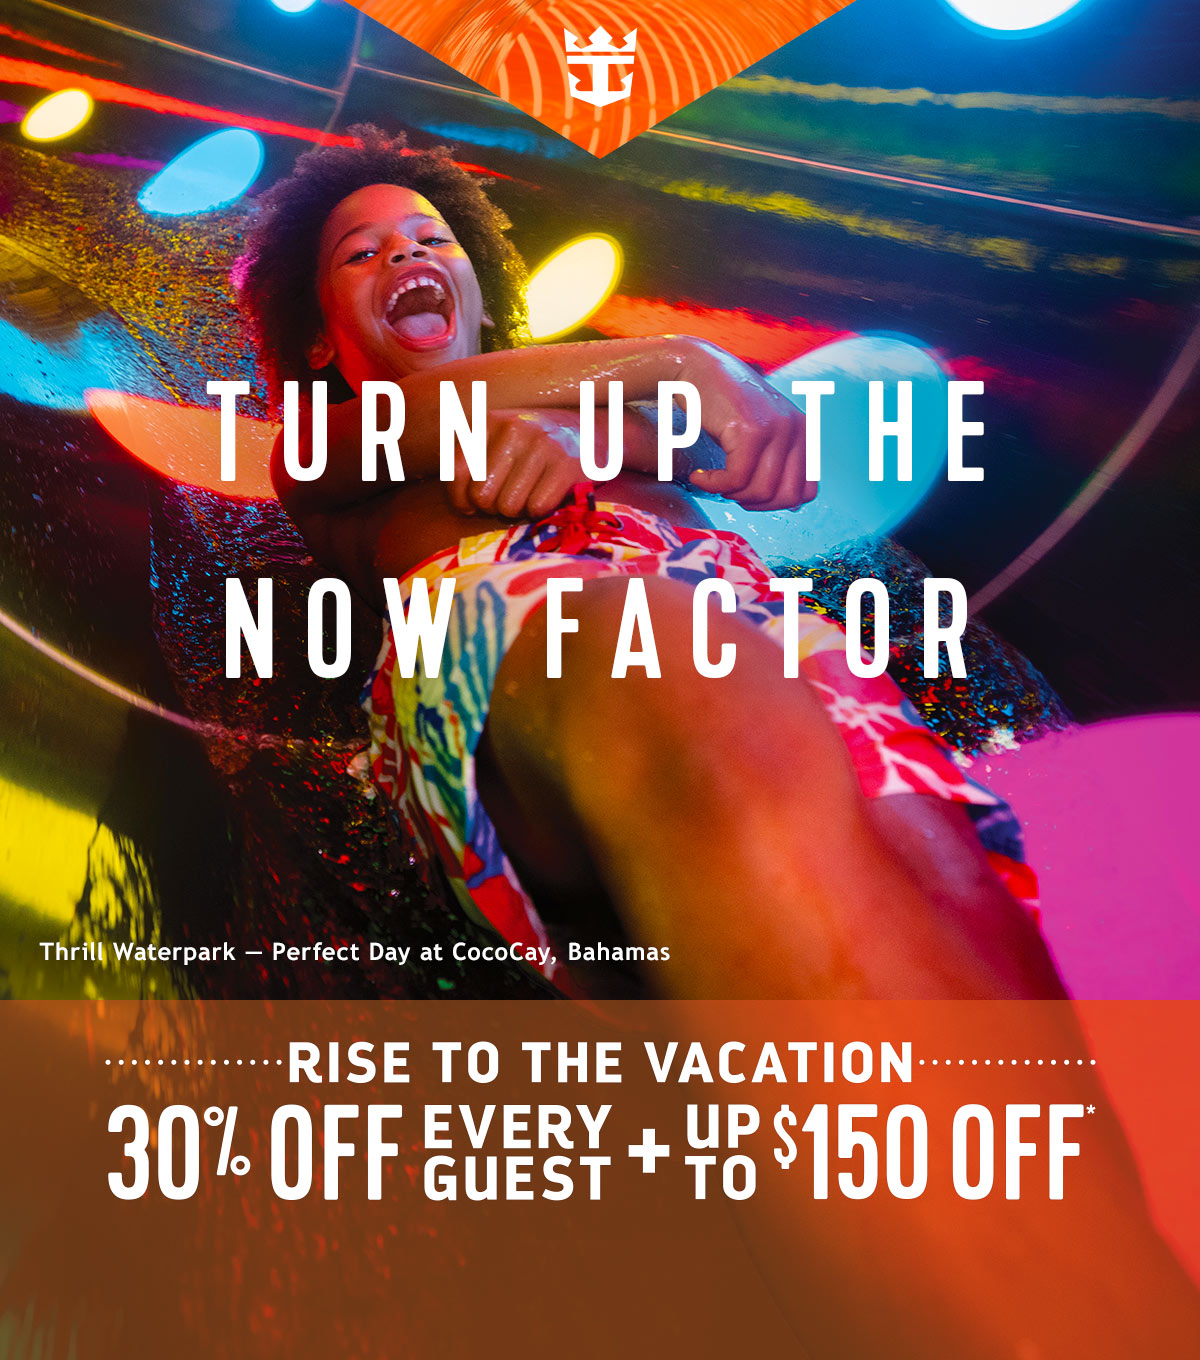 TURN UP THE NOW FACTOR